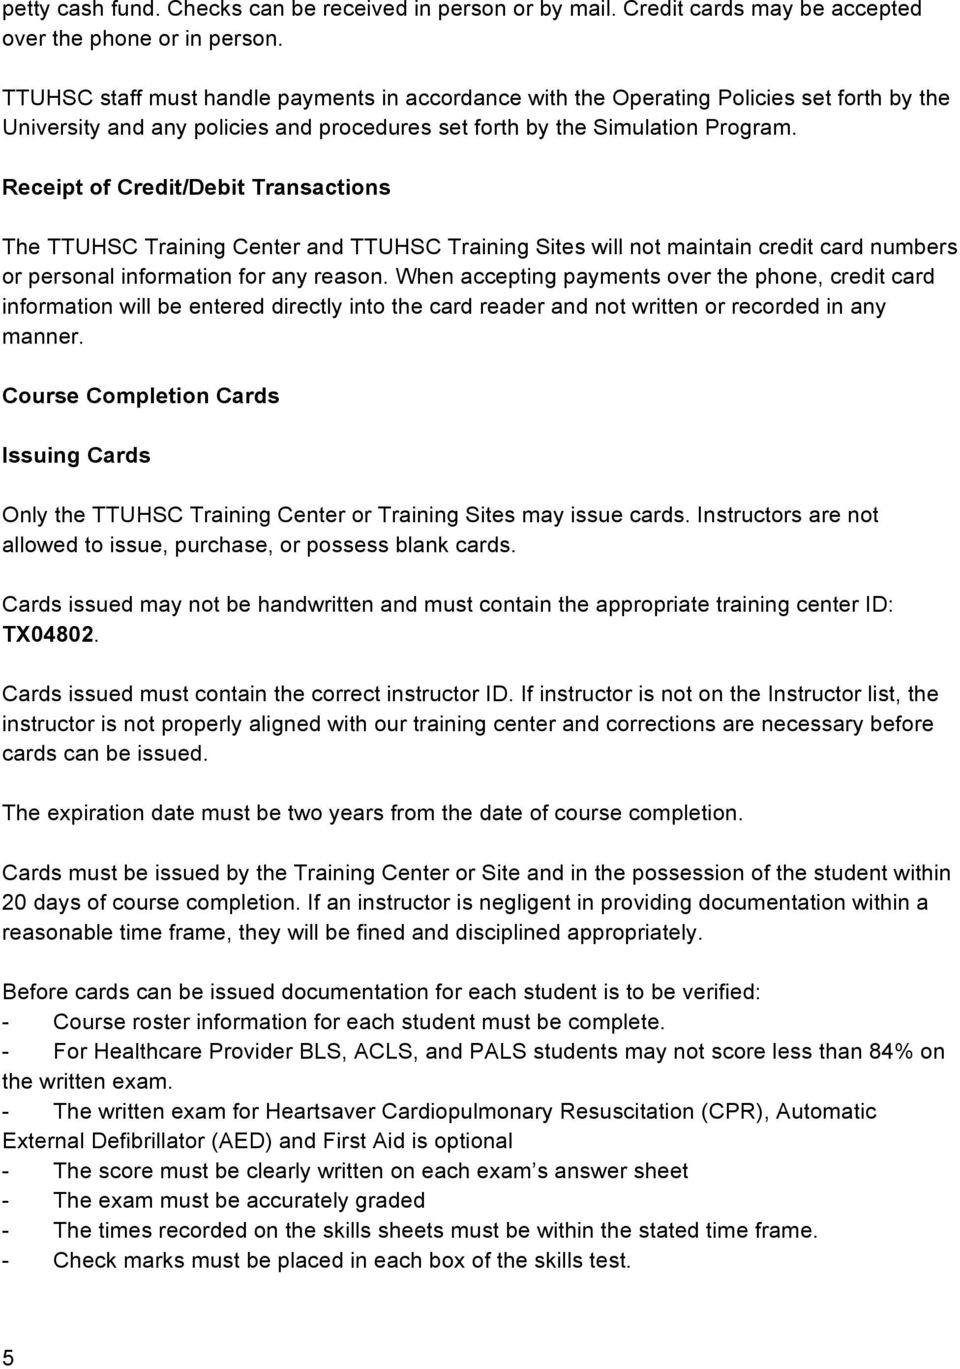 Receipt of Credit/Debit Transactions The TTUHSC Training Center and TTUHSC Training Sites will not maintain credit card numbers or personal information for any reason.